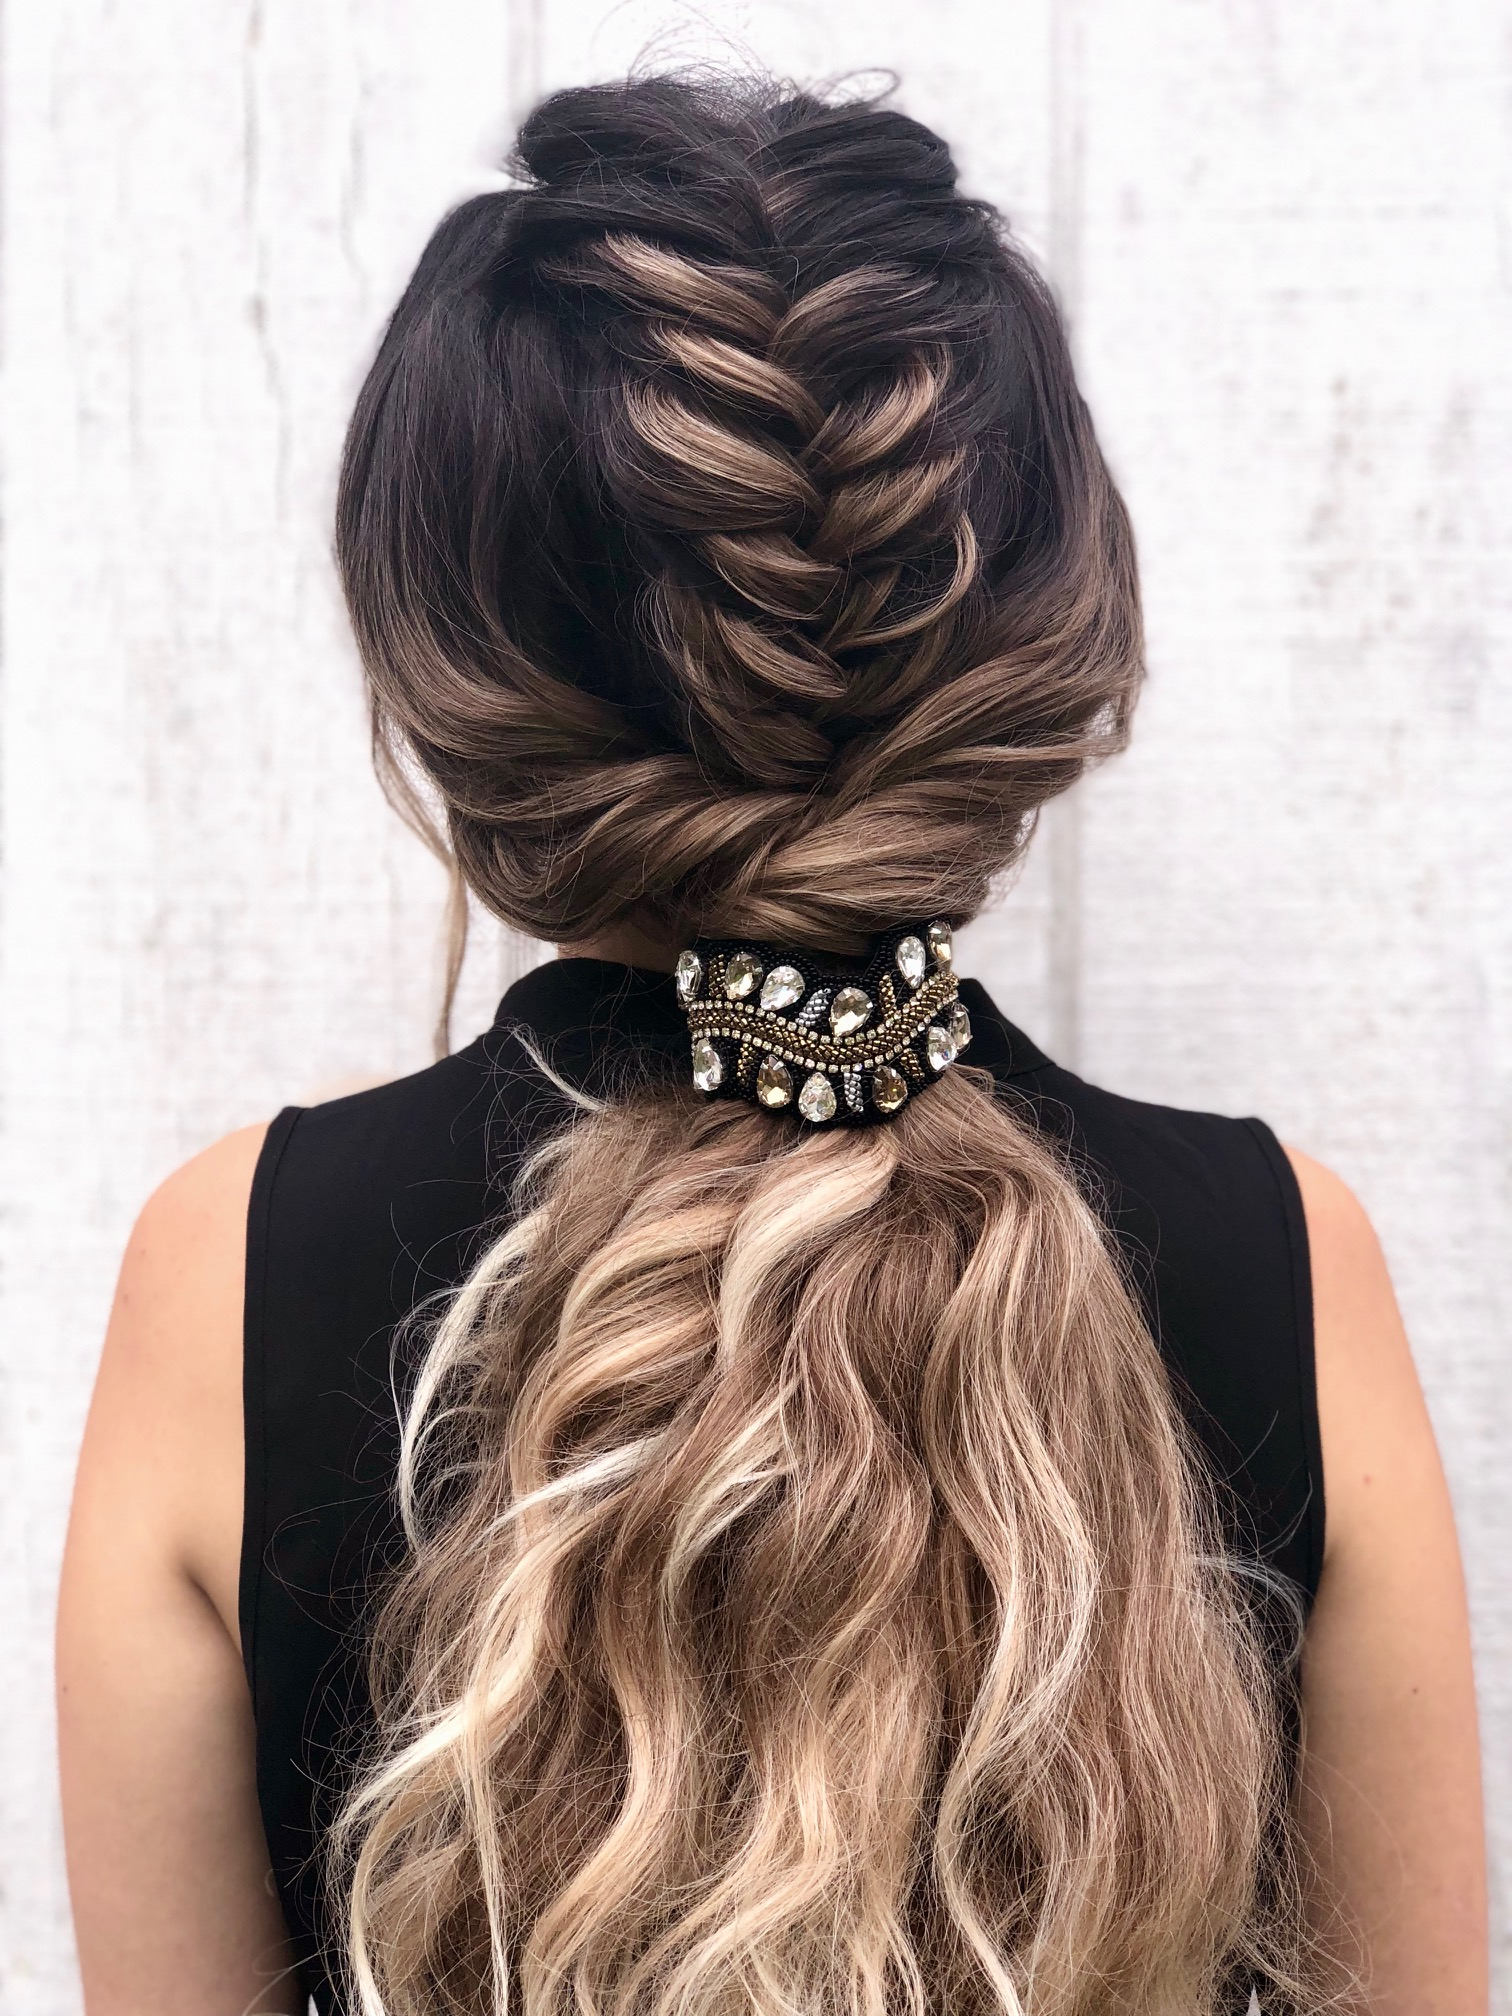 How-To: Black Tie Fishtail Braid